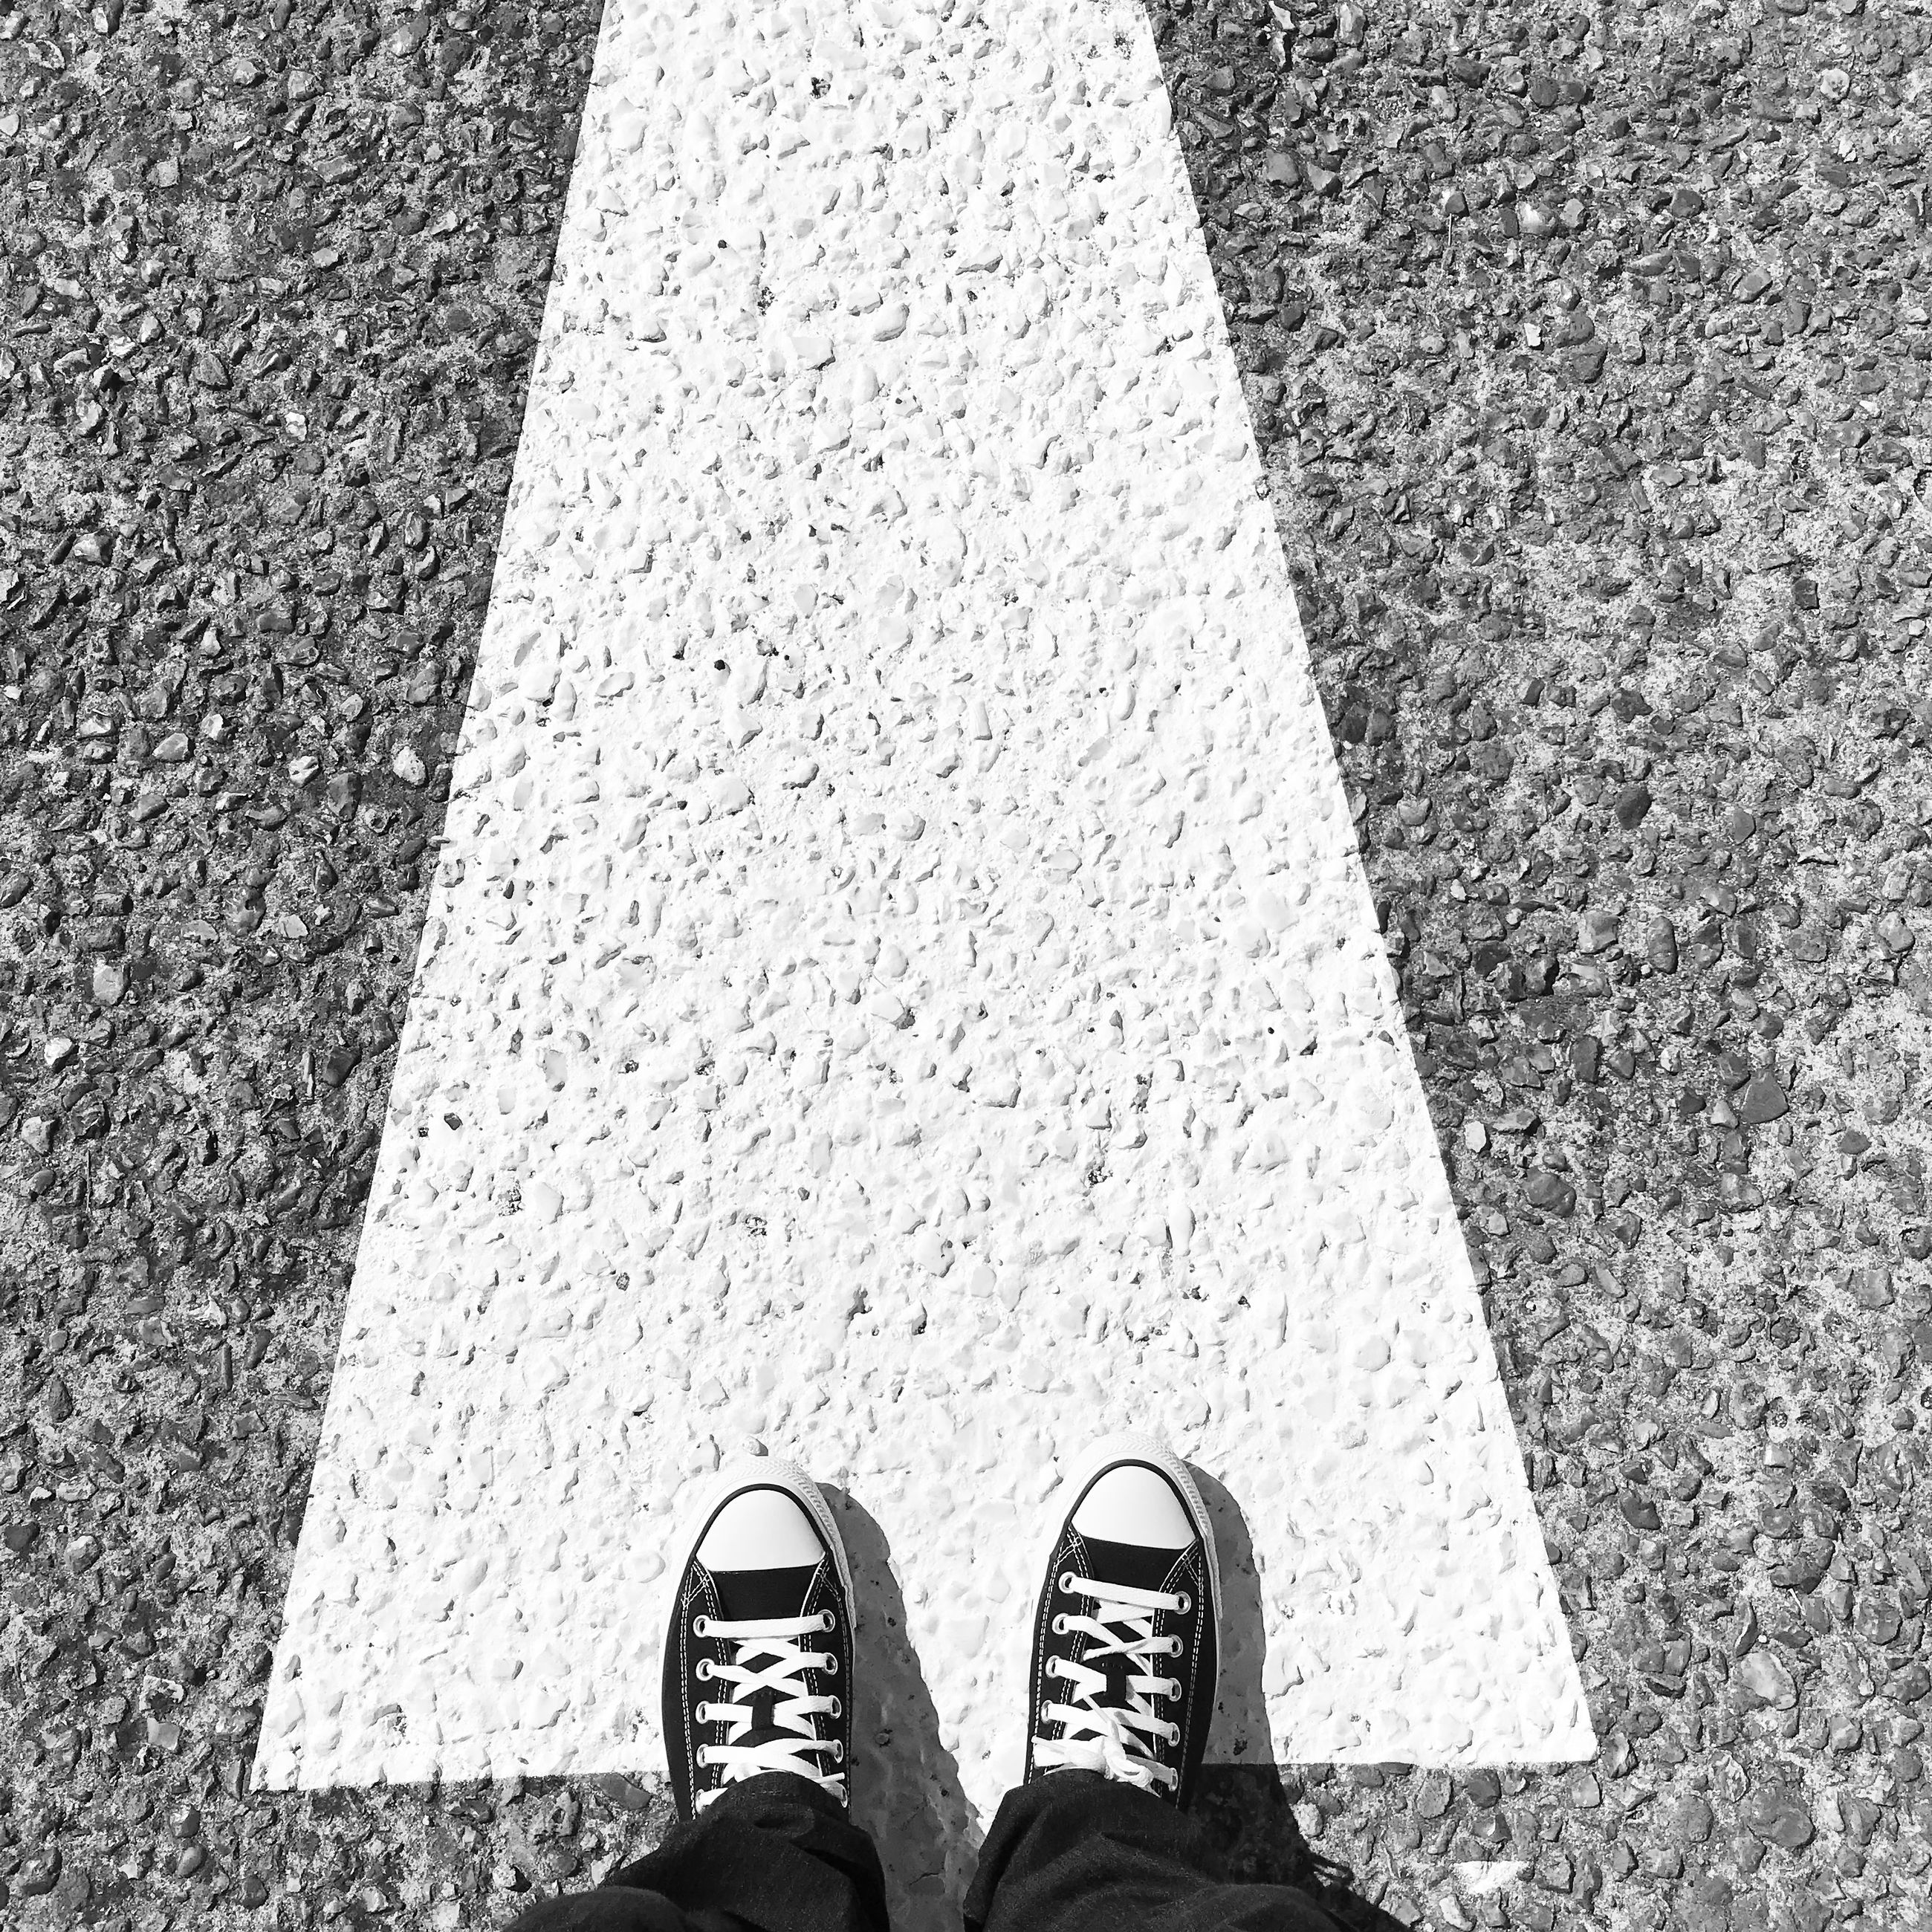 low section, human leg, one person, shoe, standing, high angle view, personal perspective, road, black, day, sign, symbol, transportation, street, city, lifestyles, asphalt, white, road marking, marking, human foot, men, black and white, human limb, limb, road surface, footwear, directly above, leisure activity, outdoors, lane, monochrome, communication, guidance, monochrome photography